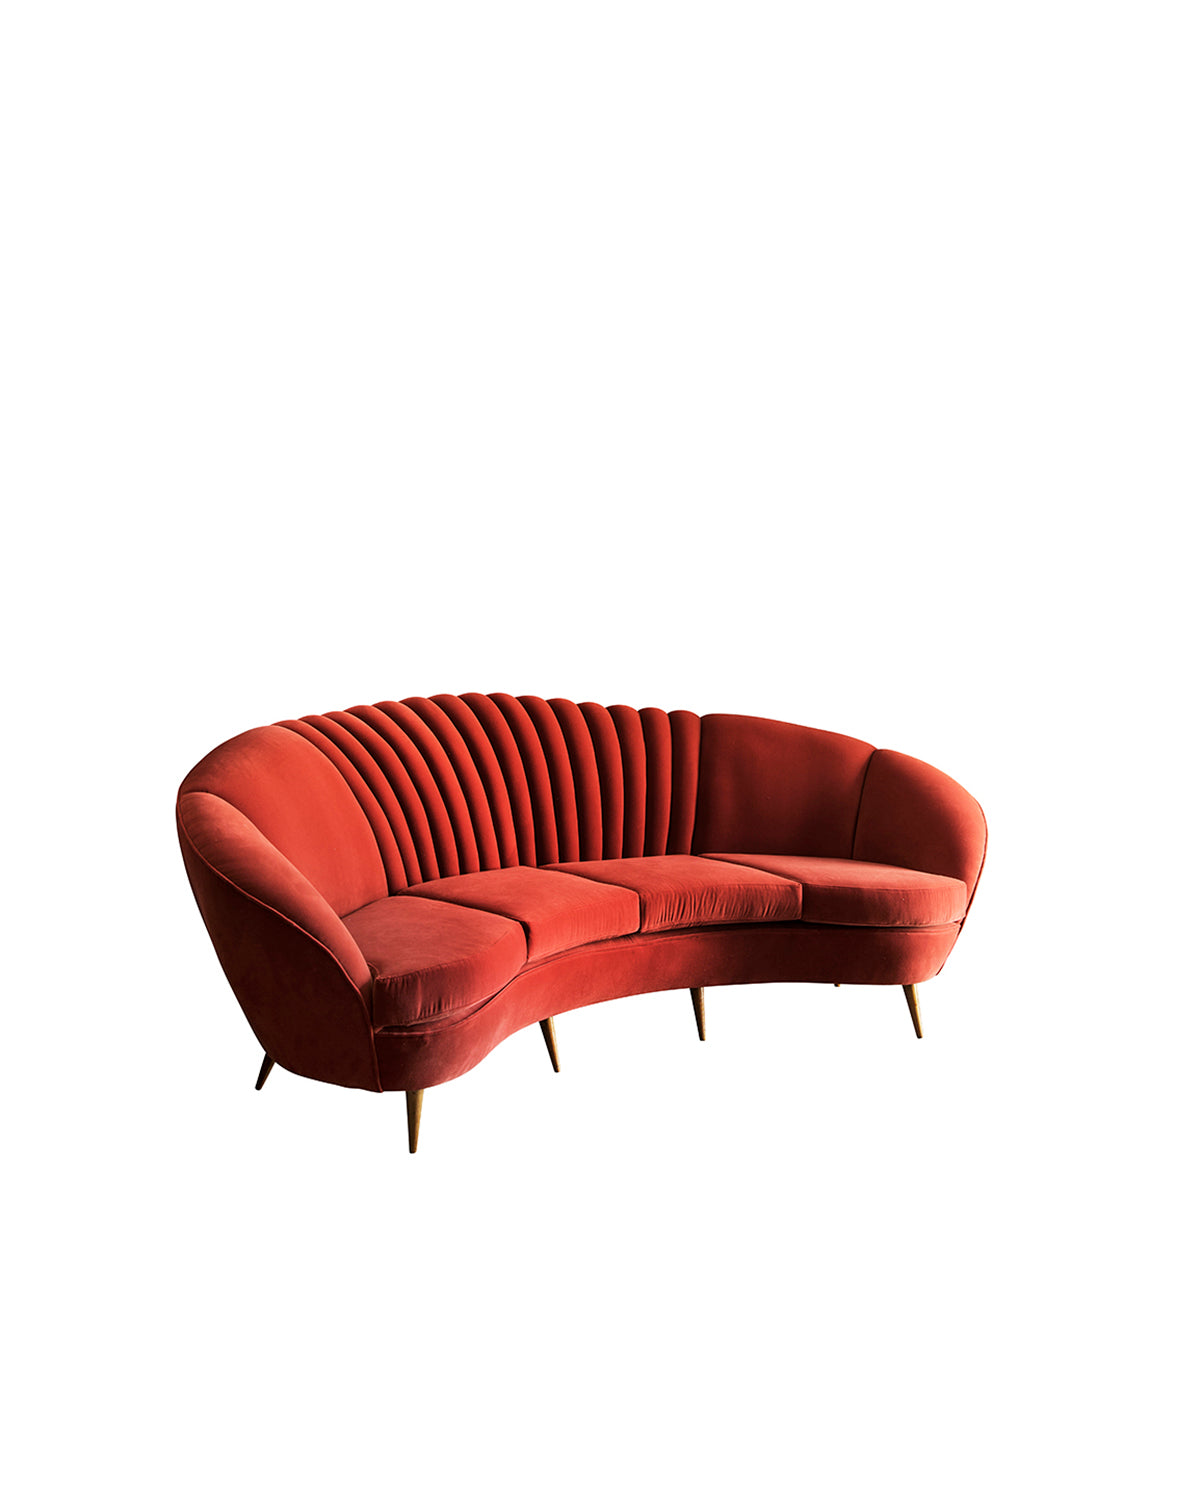 Sofa in red velvet. Italy, 1950s